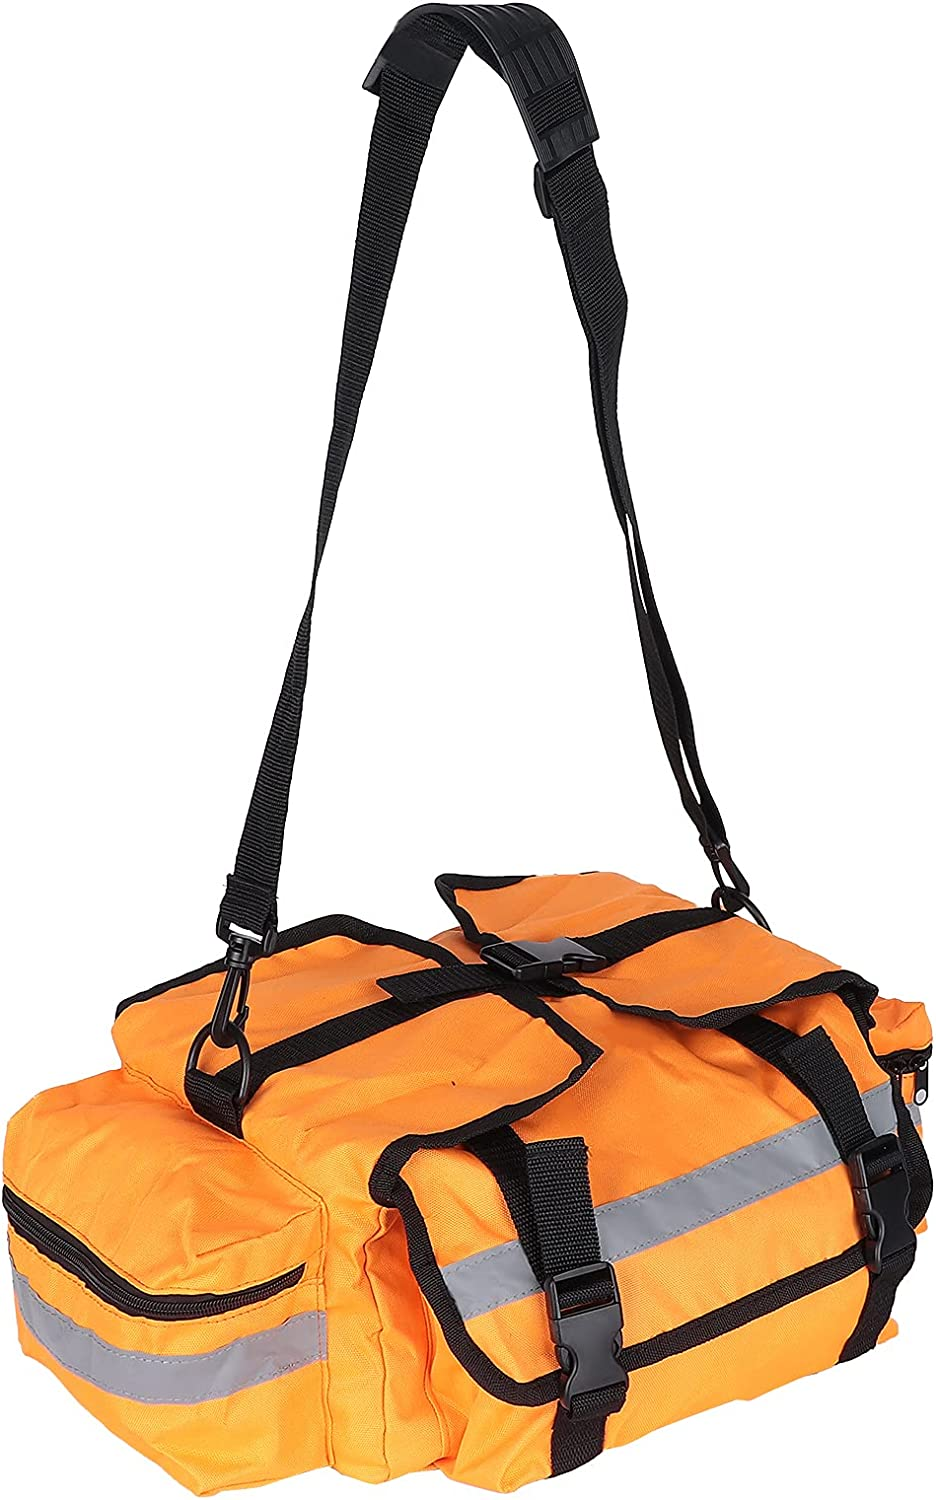 BRDI Emergency Care Kit Compact with Orange Ranking TOP6 Max 60% OFF Empty